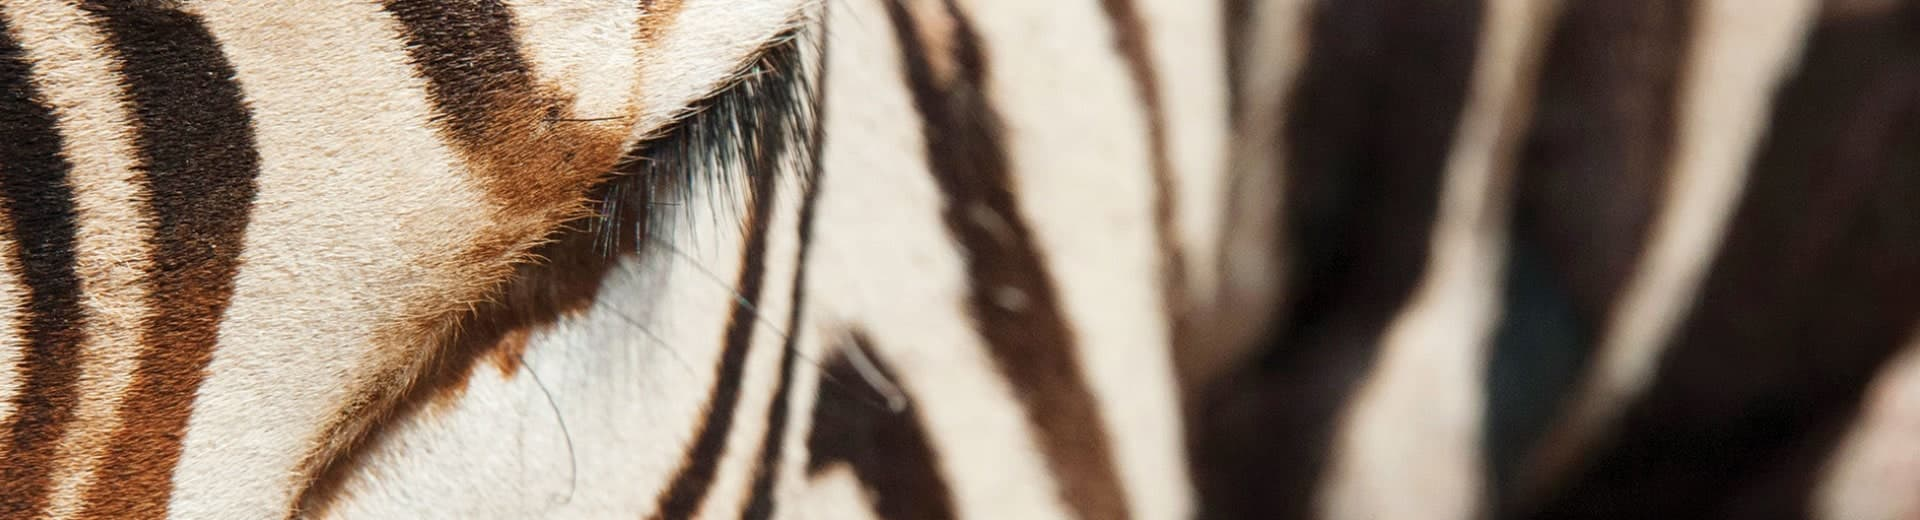 zebra-background